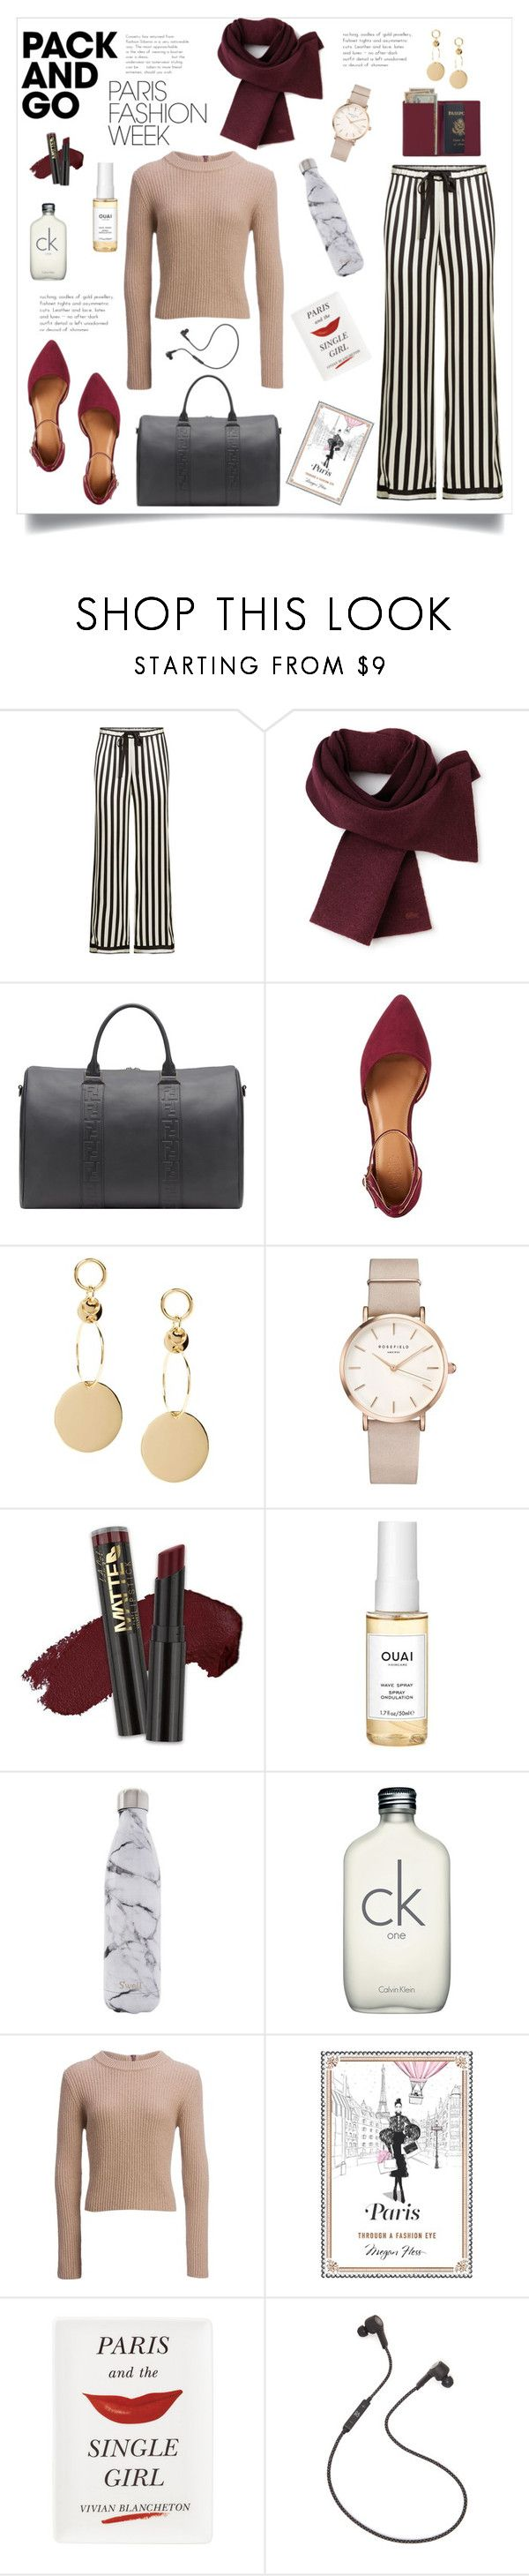 """""""Paris Bound"""" by alexandra-fry ❤ liked on Polyvore featuring Morgan Lane, Lacoste, Charlotte Russe, ROSEFIELD, L.A. Girl, Ouai, S'well, Carve Designs, Chronicle Books and Kate Spade"""